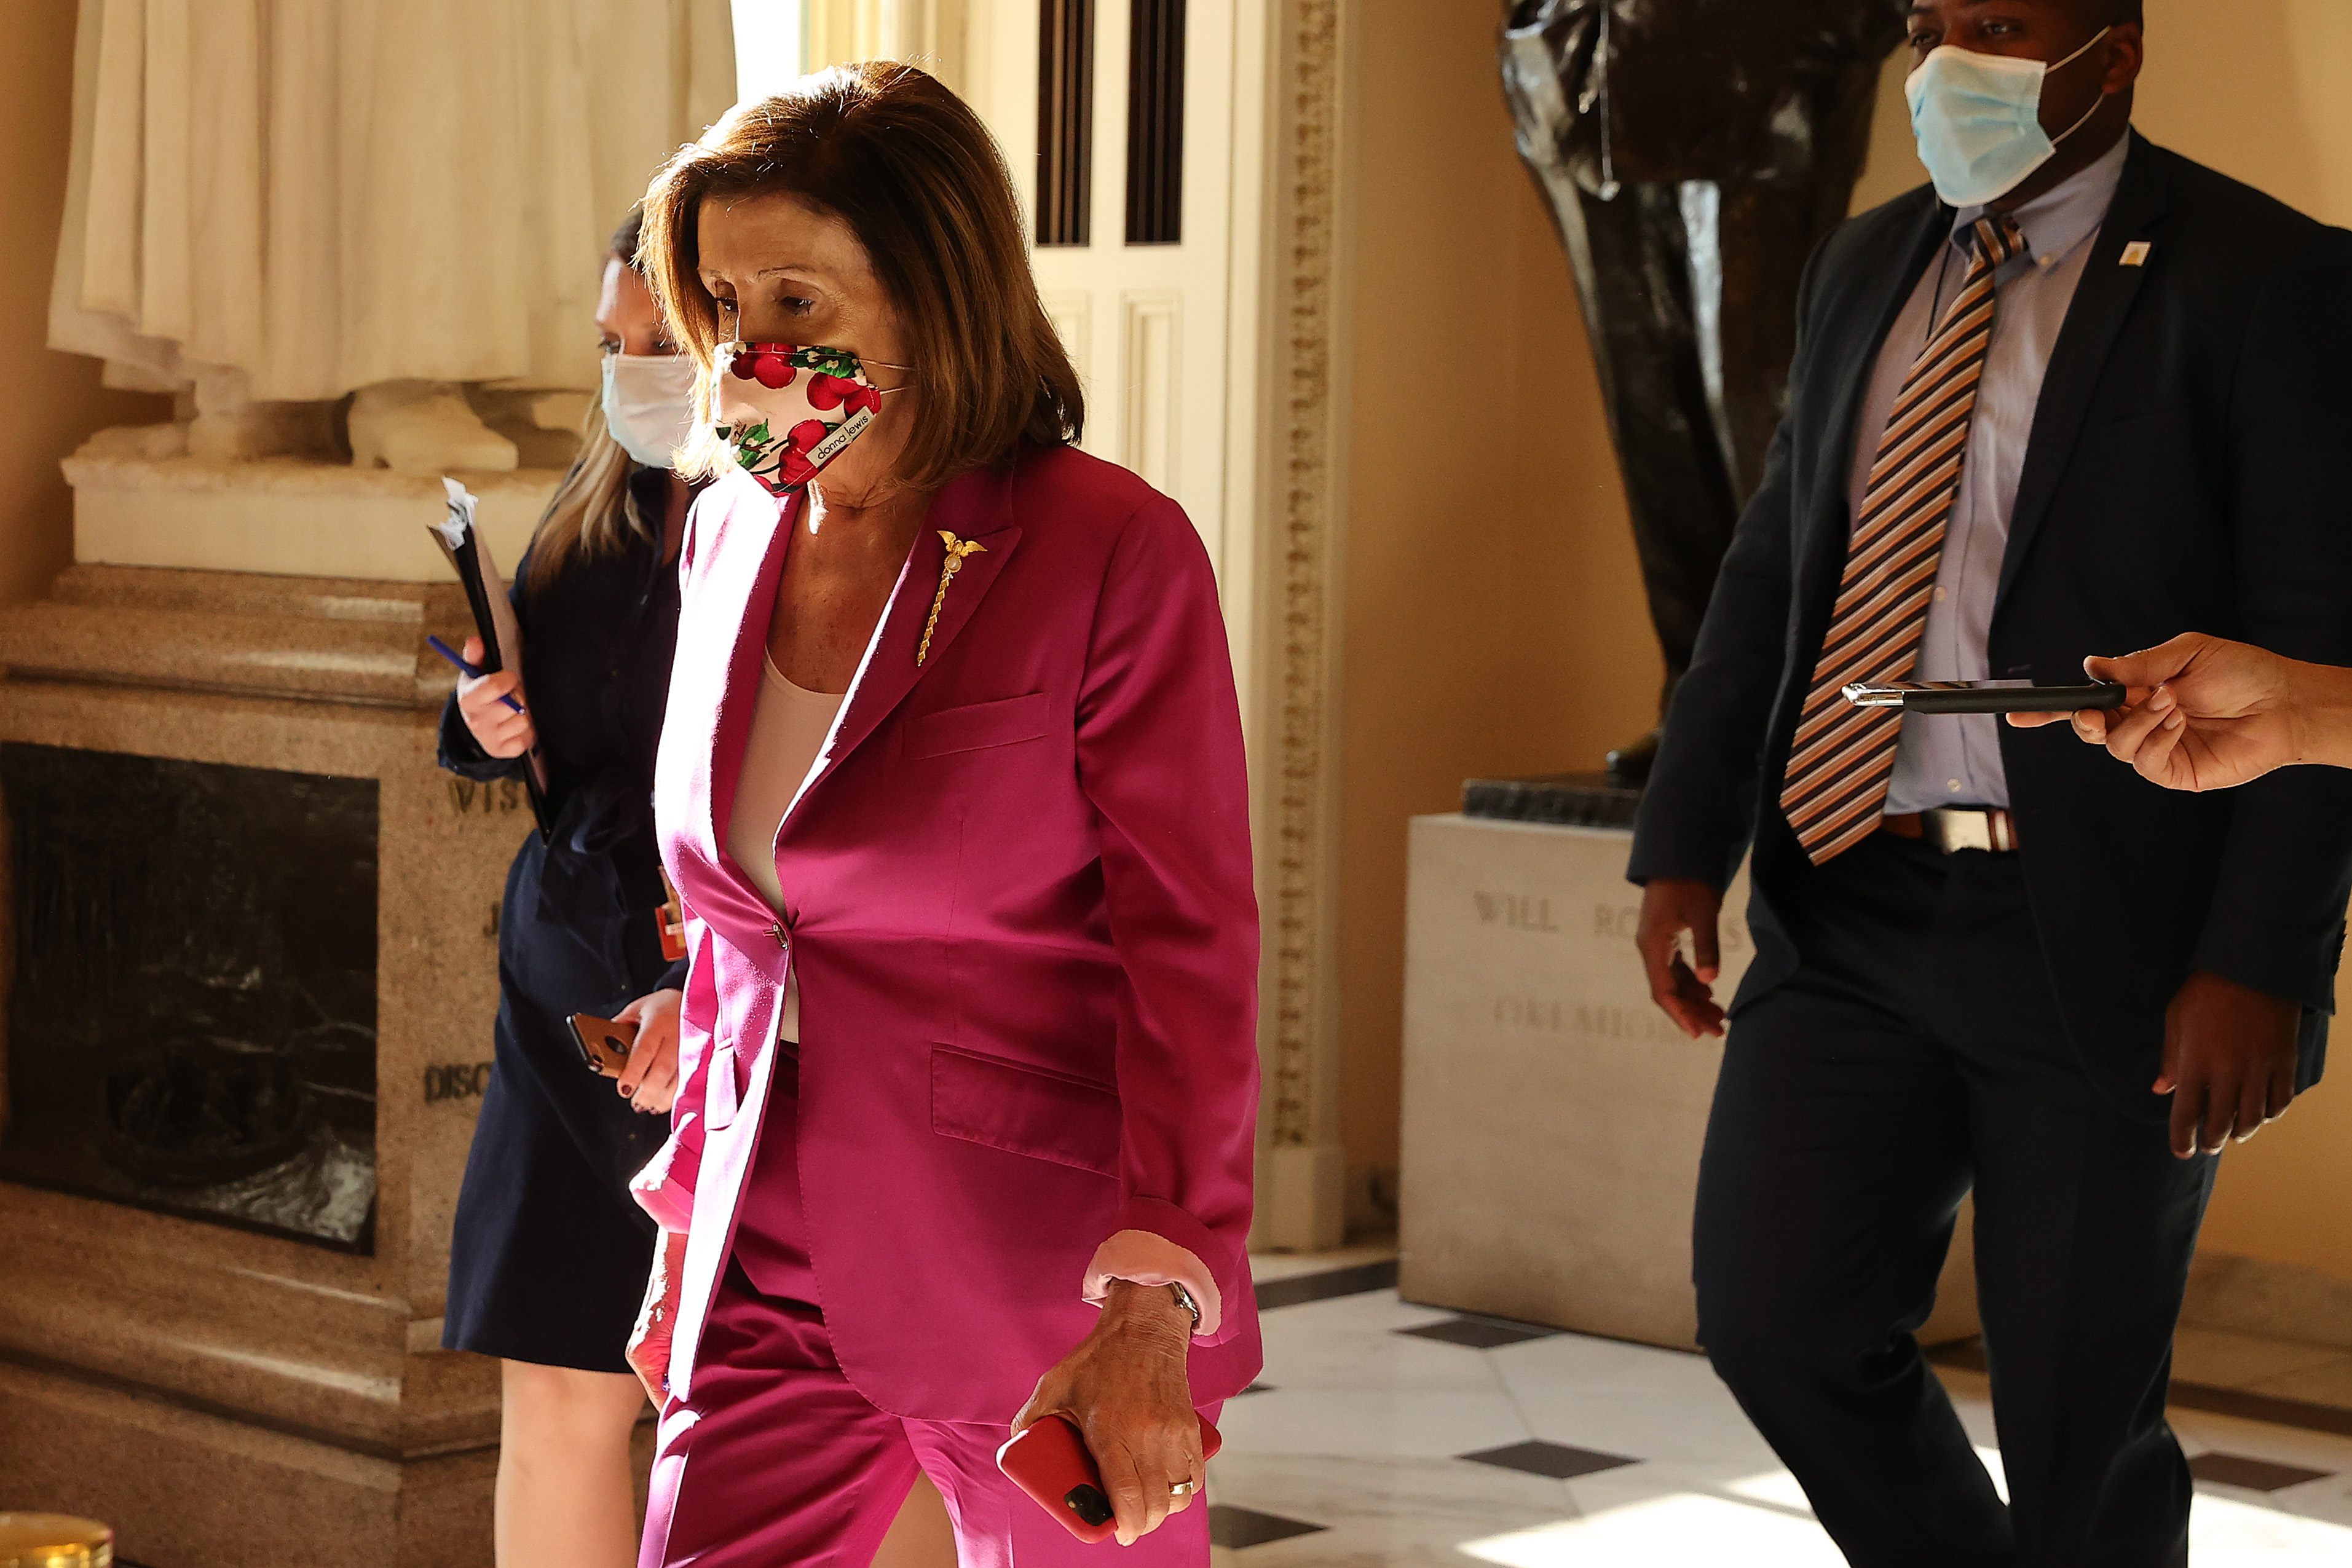 Speaker of the House Nancy Pelosi (D-Calif.) is accompanied by staff, security and press she walks through the U.S. Capitol Friday before a series of votes on a $3 trillion economic package to aid for those affected by the coronavirus pandemic.